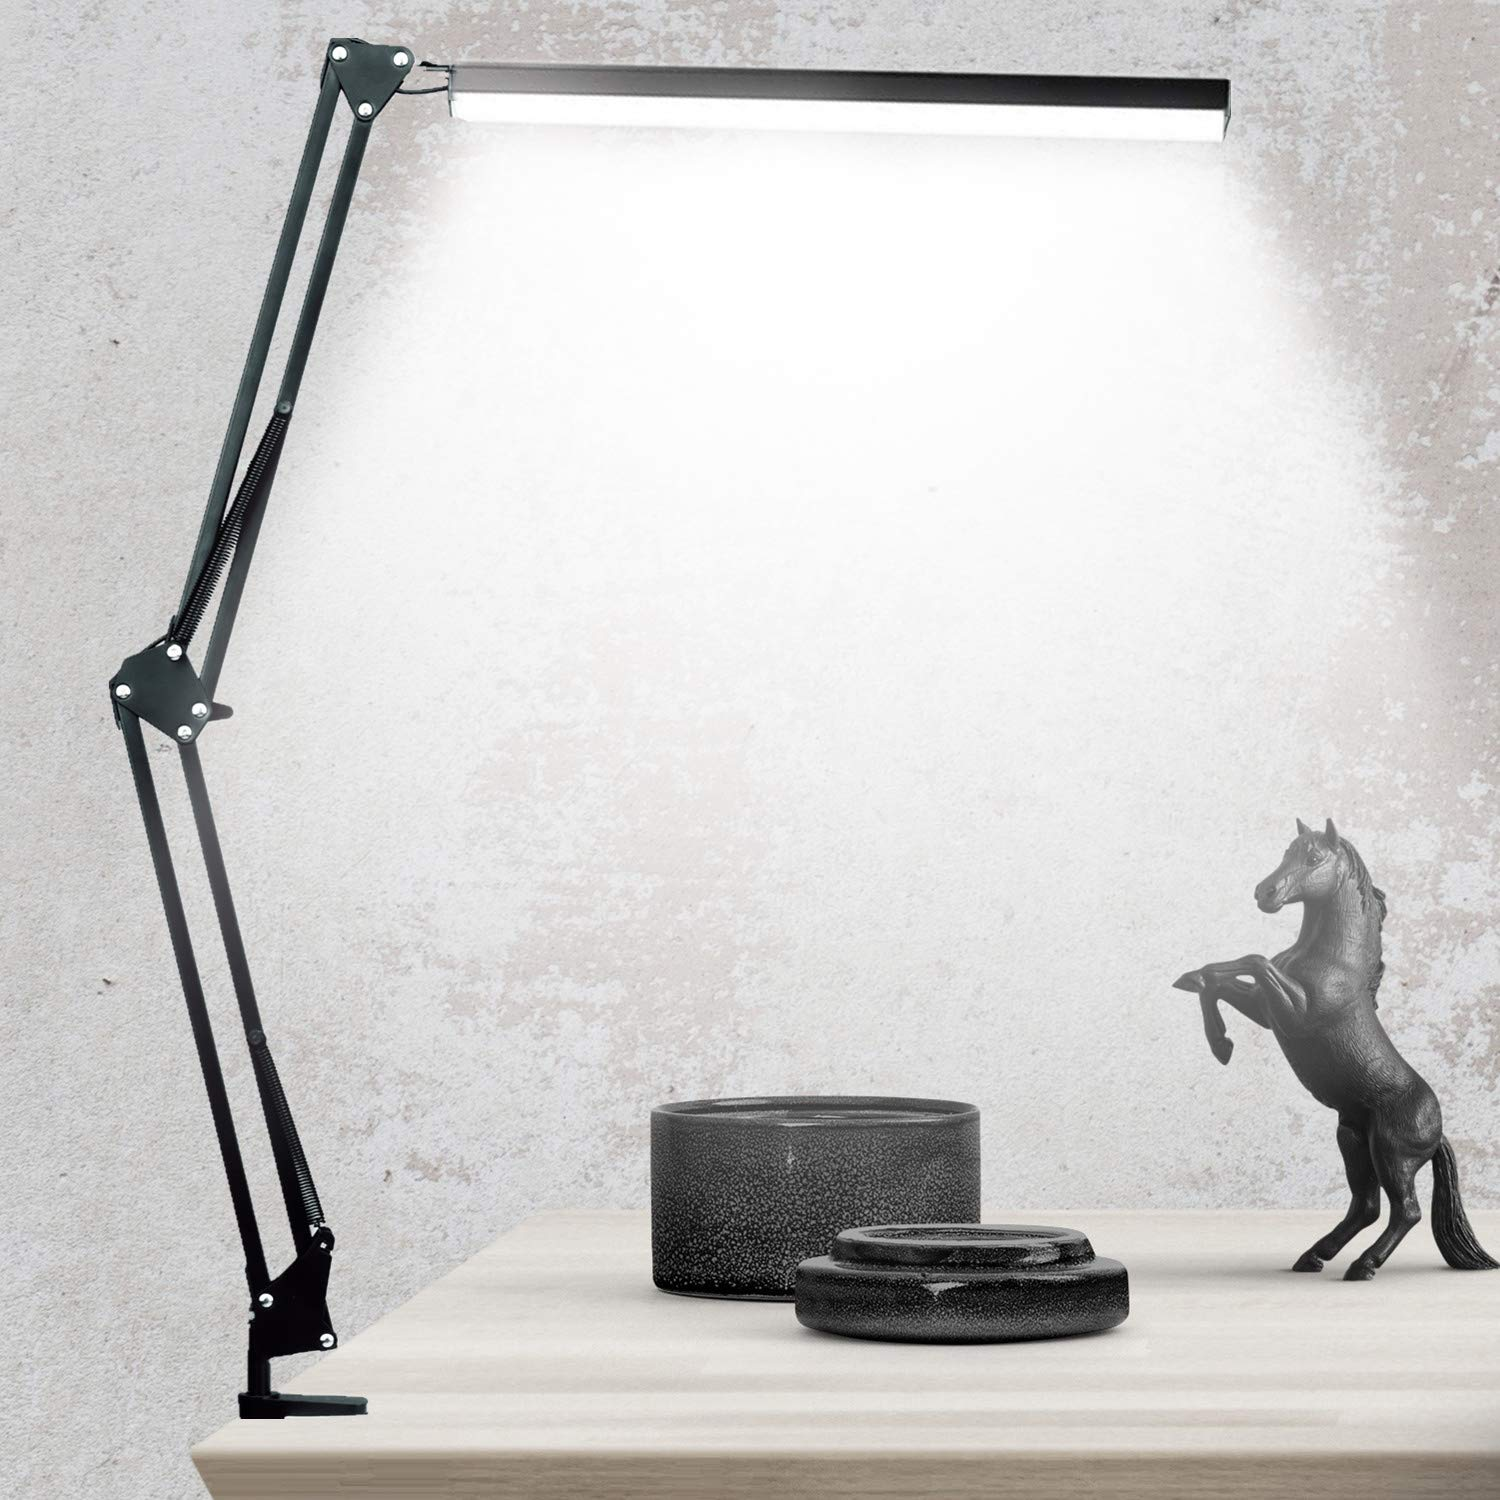 LED Architect Desk Lamp, BZBRLZ Metal Swing Arm Lamp, Infinite Brightness Adjustable, Eye-Caring Dimmable Table Lamp, 3 Color Modes, One-Button Operation, Memory Function